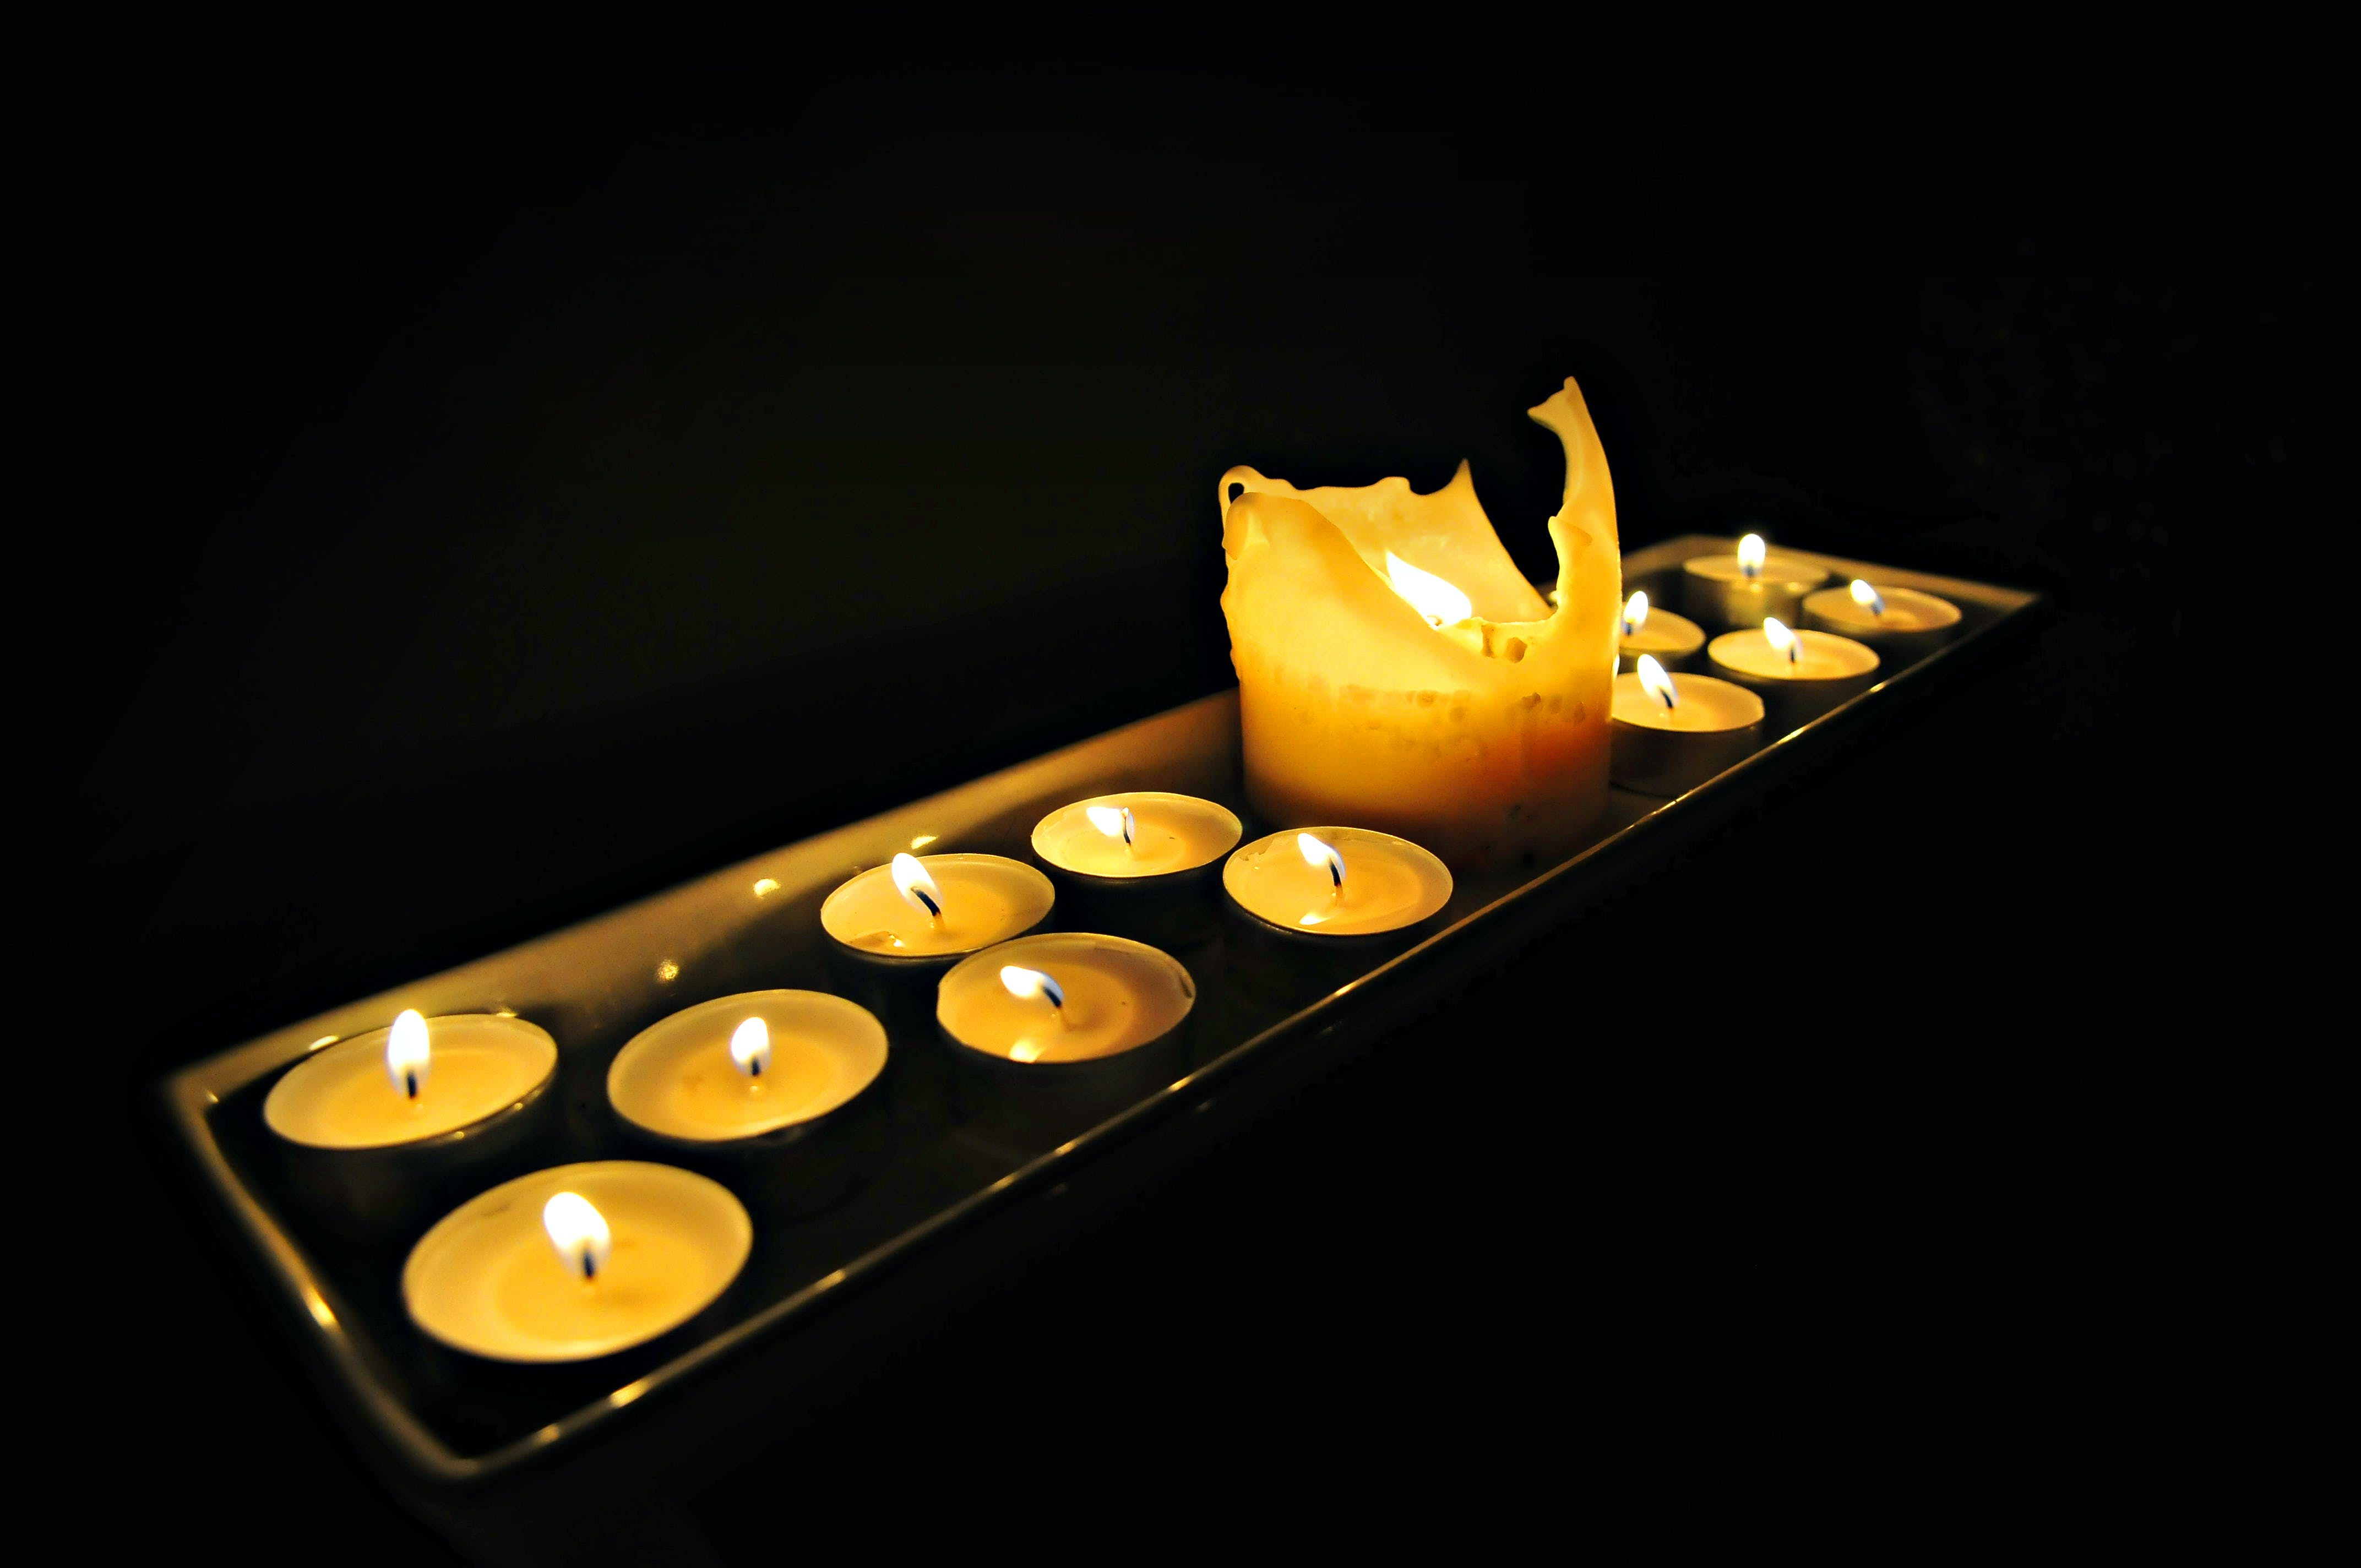 Free stock photo of light, fire, candles, flame